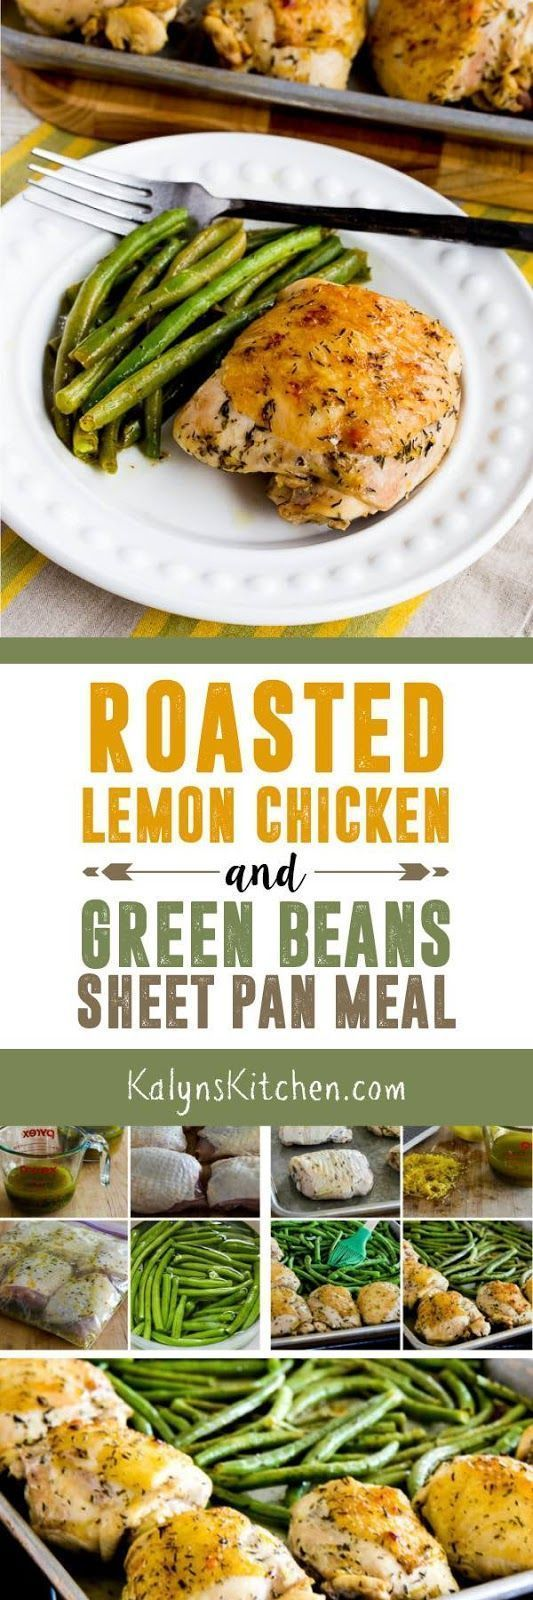 This Roasted Lemon Chicken and Green Beans Sheet Pan Meal is easy and delicious and this dinner is low-carb, Paleo, Whole 30, gluten-free, and South Beach Diet Phase One!  [found on http://KalynsKitchen.com]